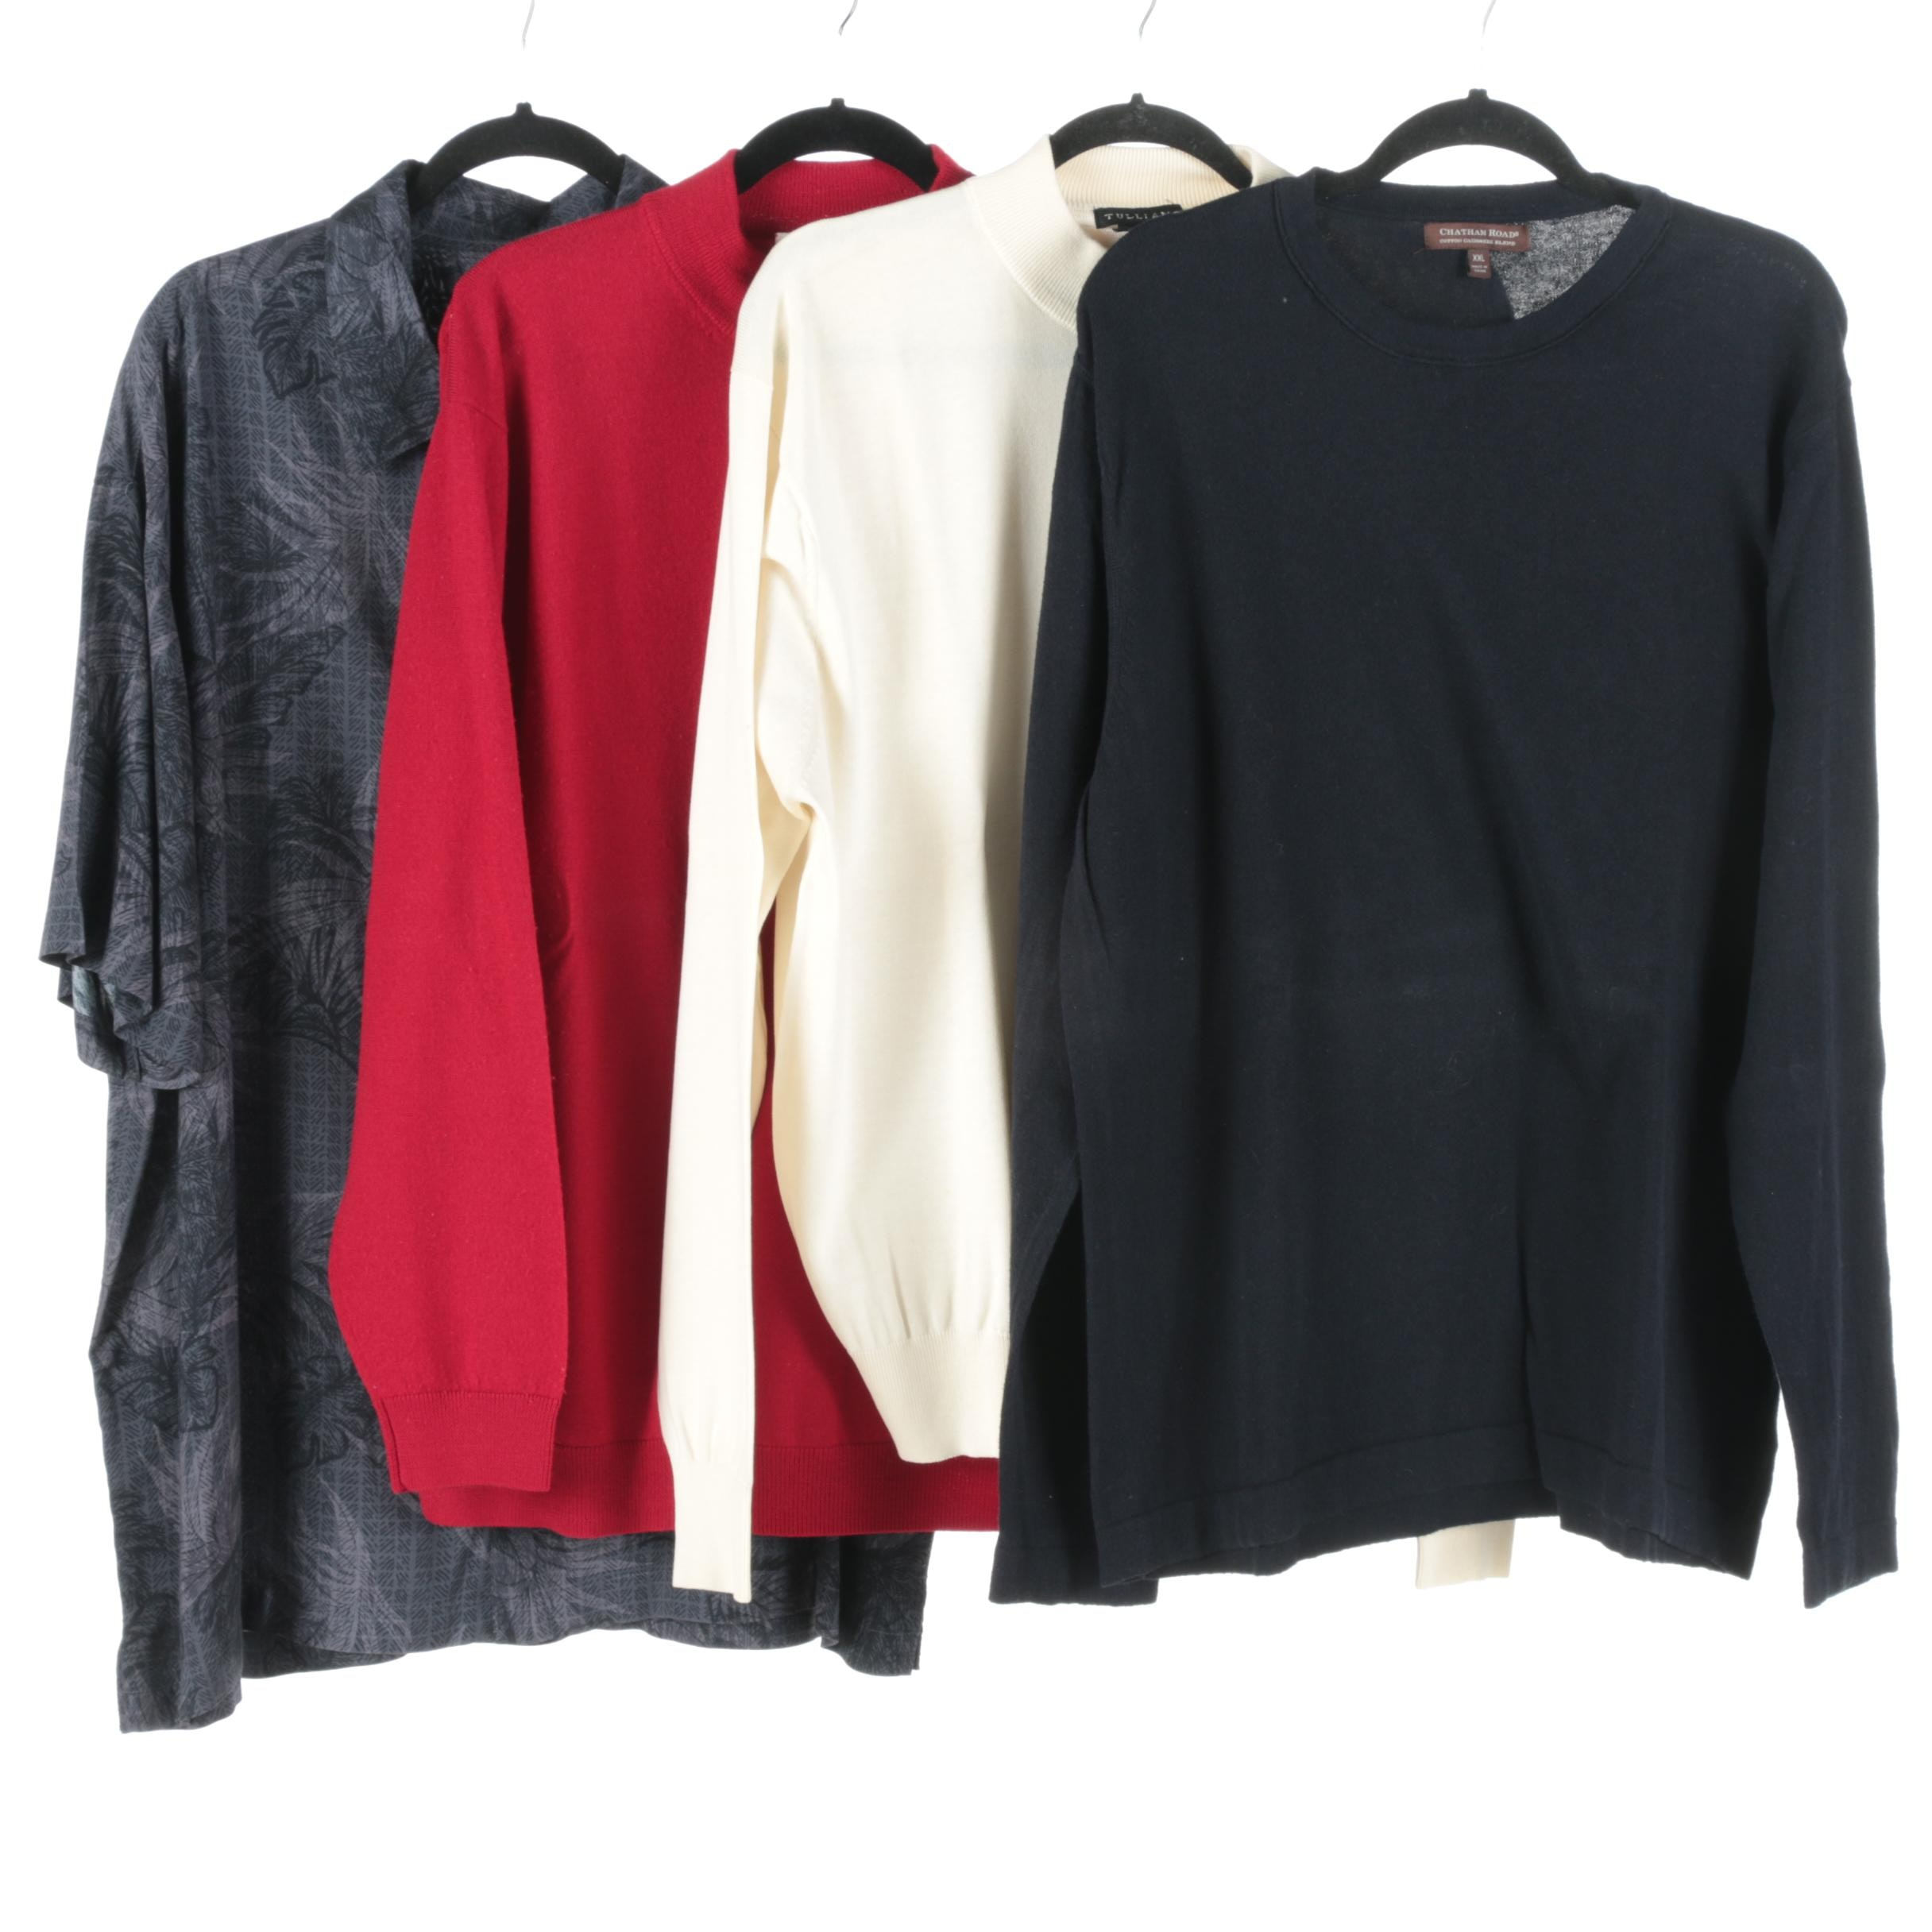 Collection of Men's Sweaters and Button Down Shirt